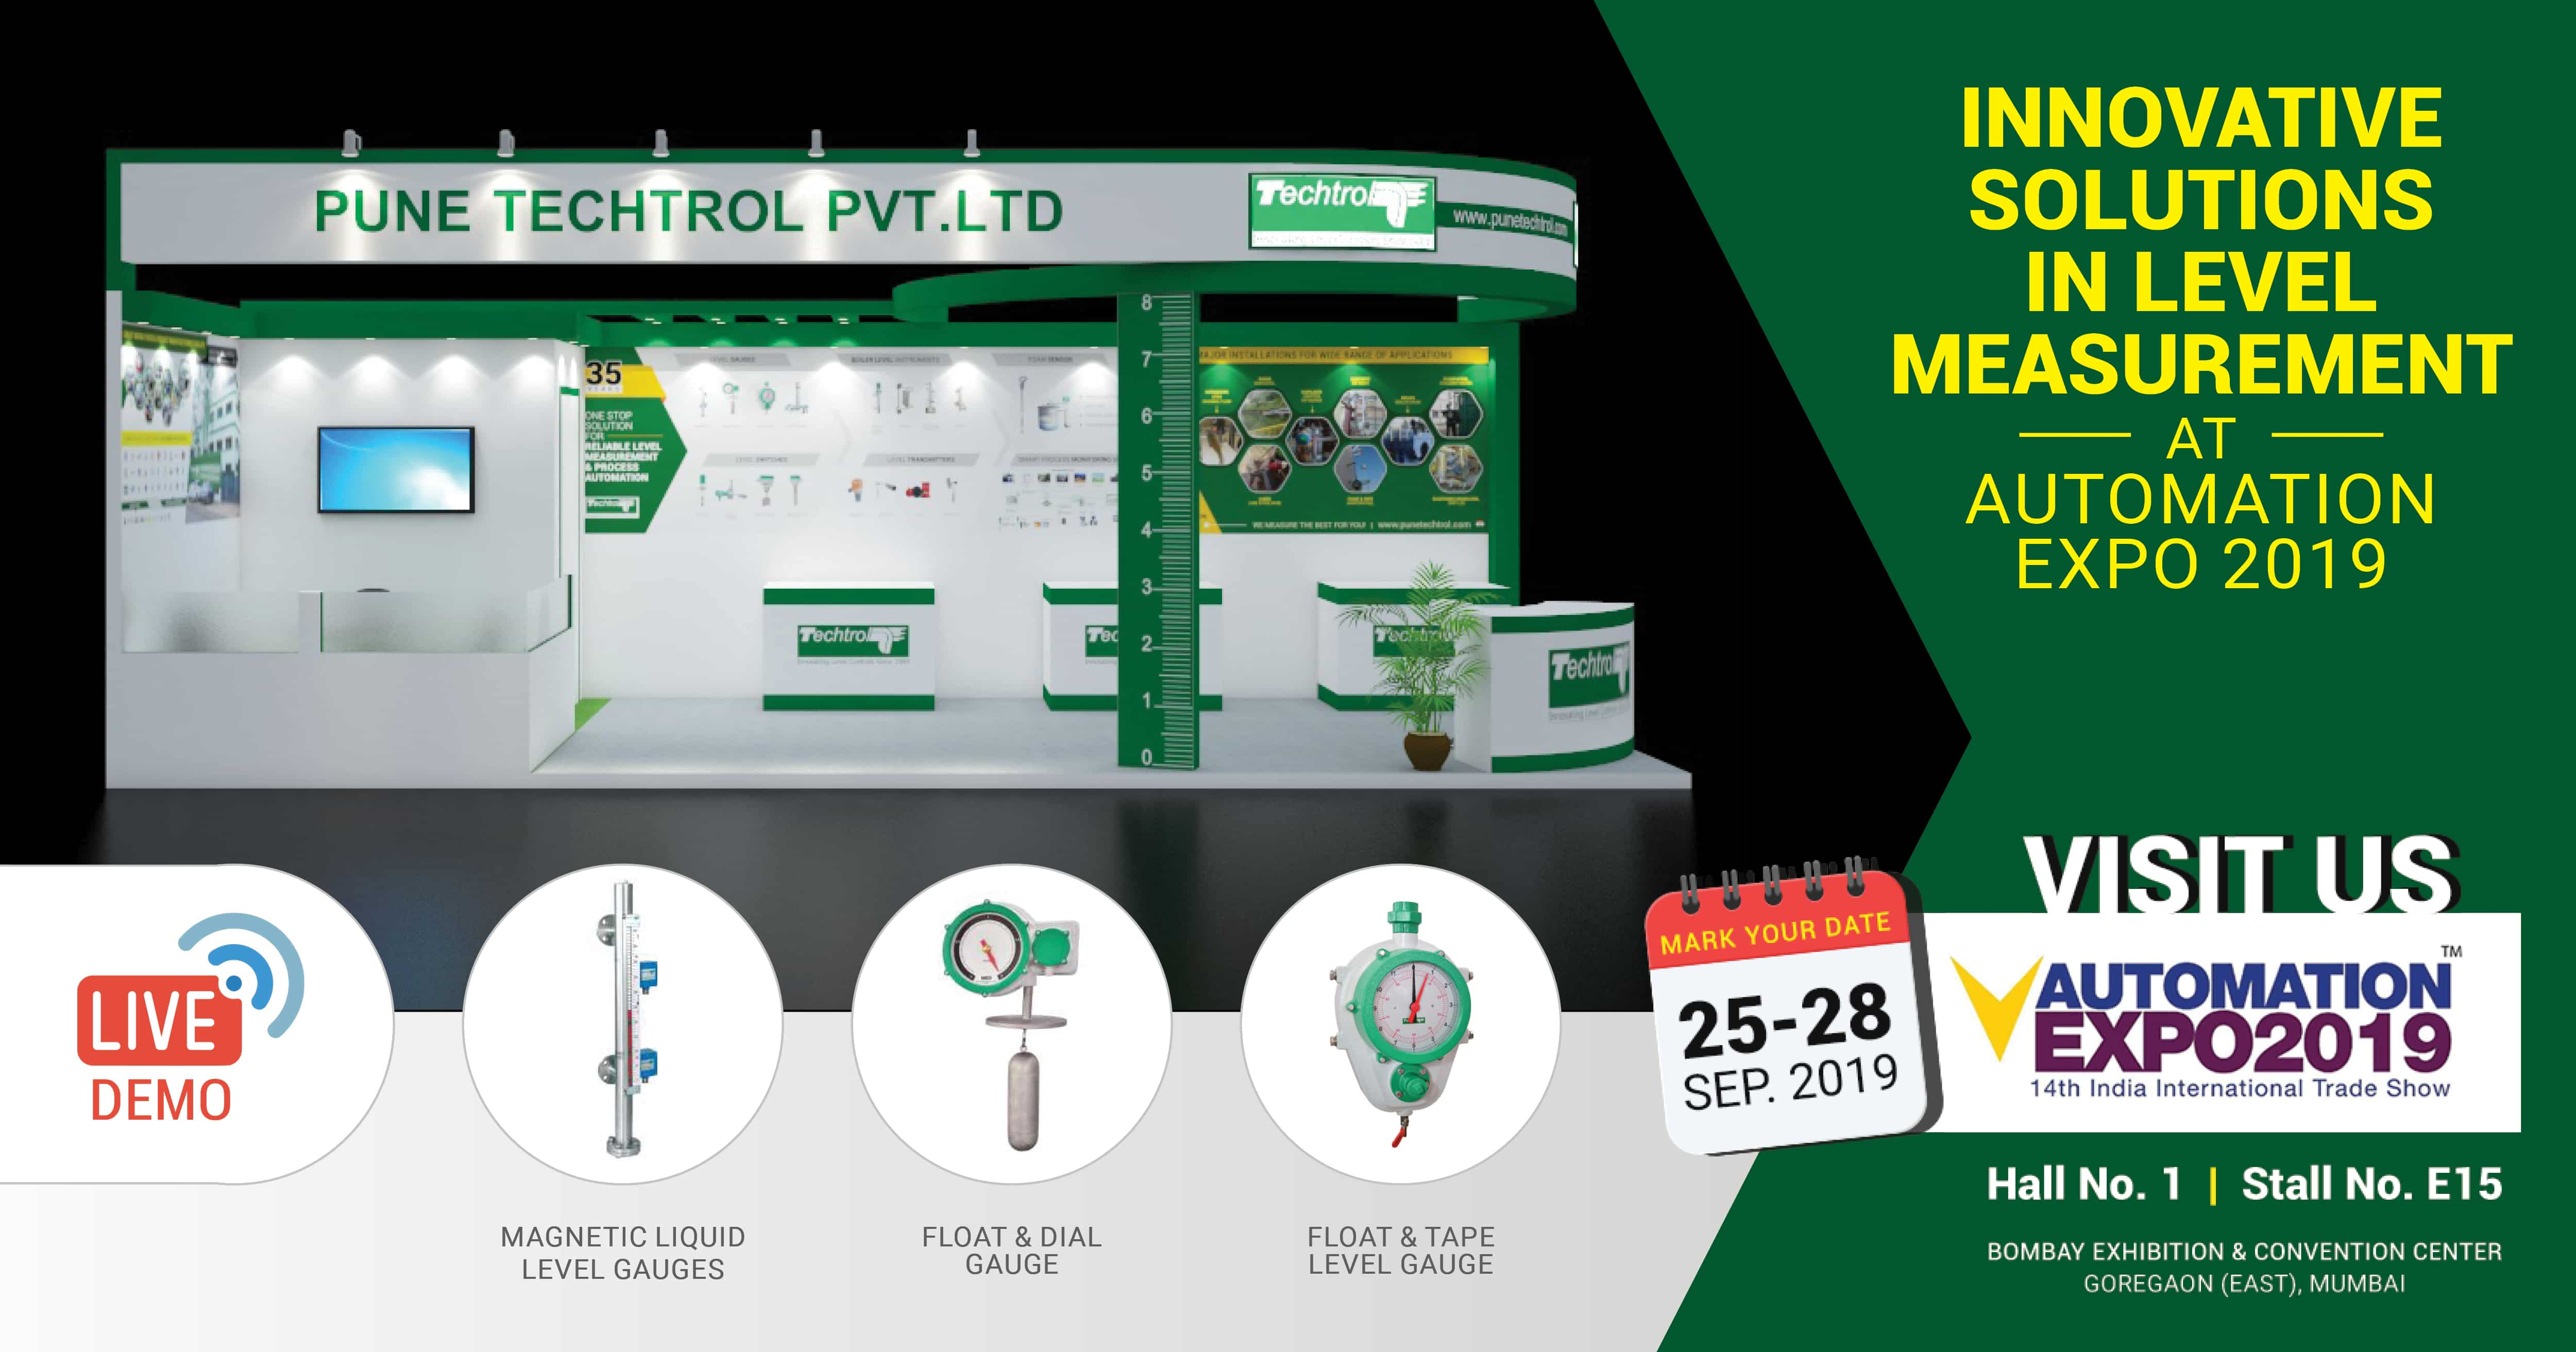 Pune Techtrol Future of Level Measurement and Process Automation [Automation India Expo 2019]